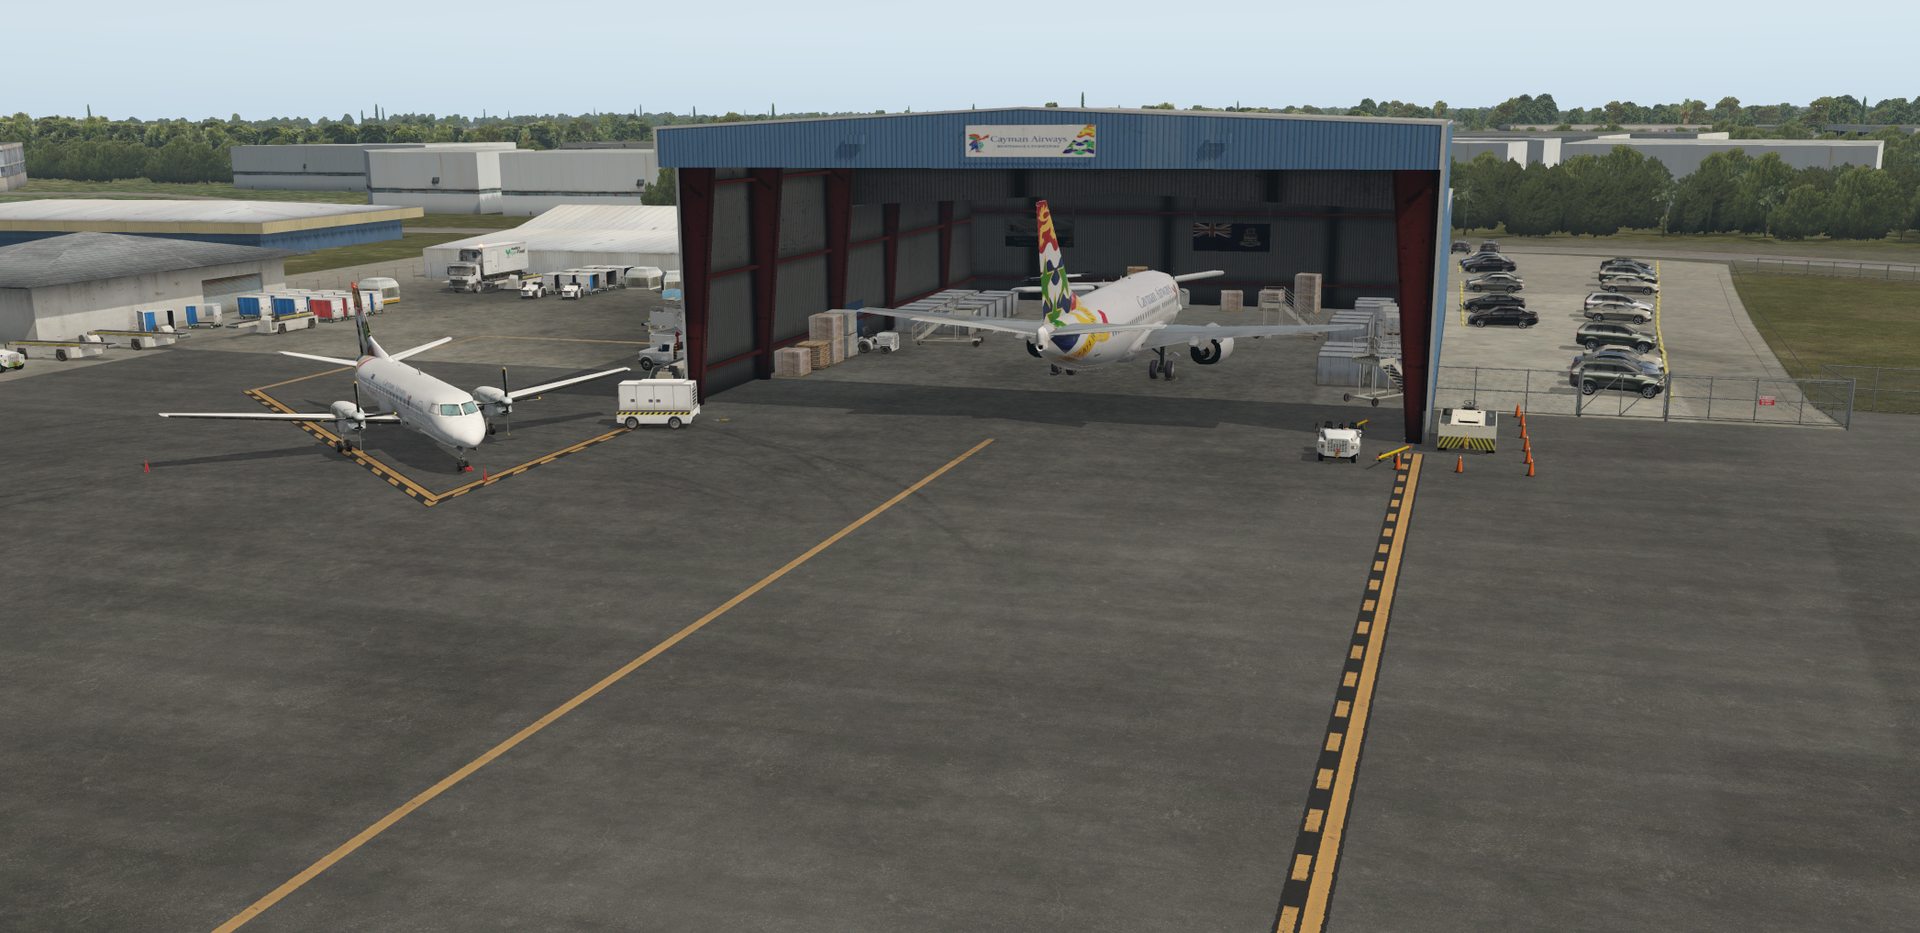 b738_66.png